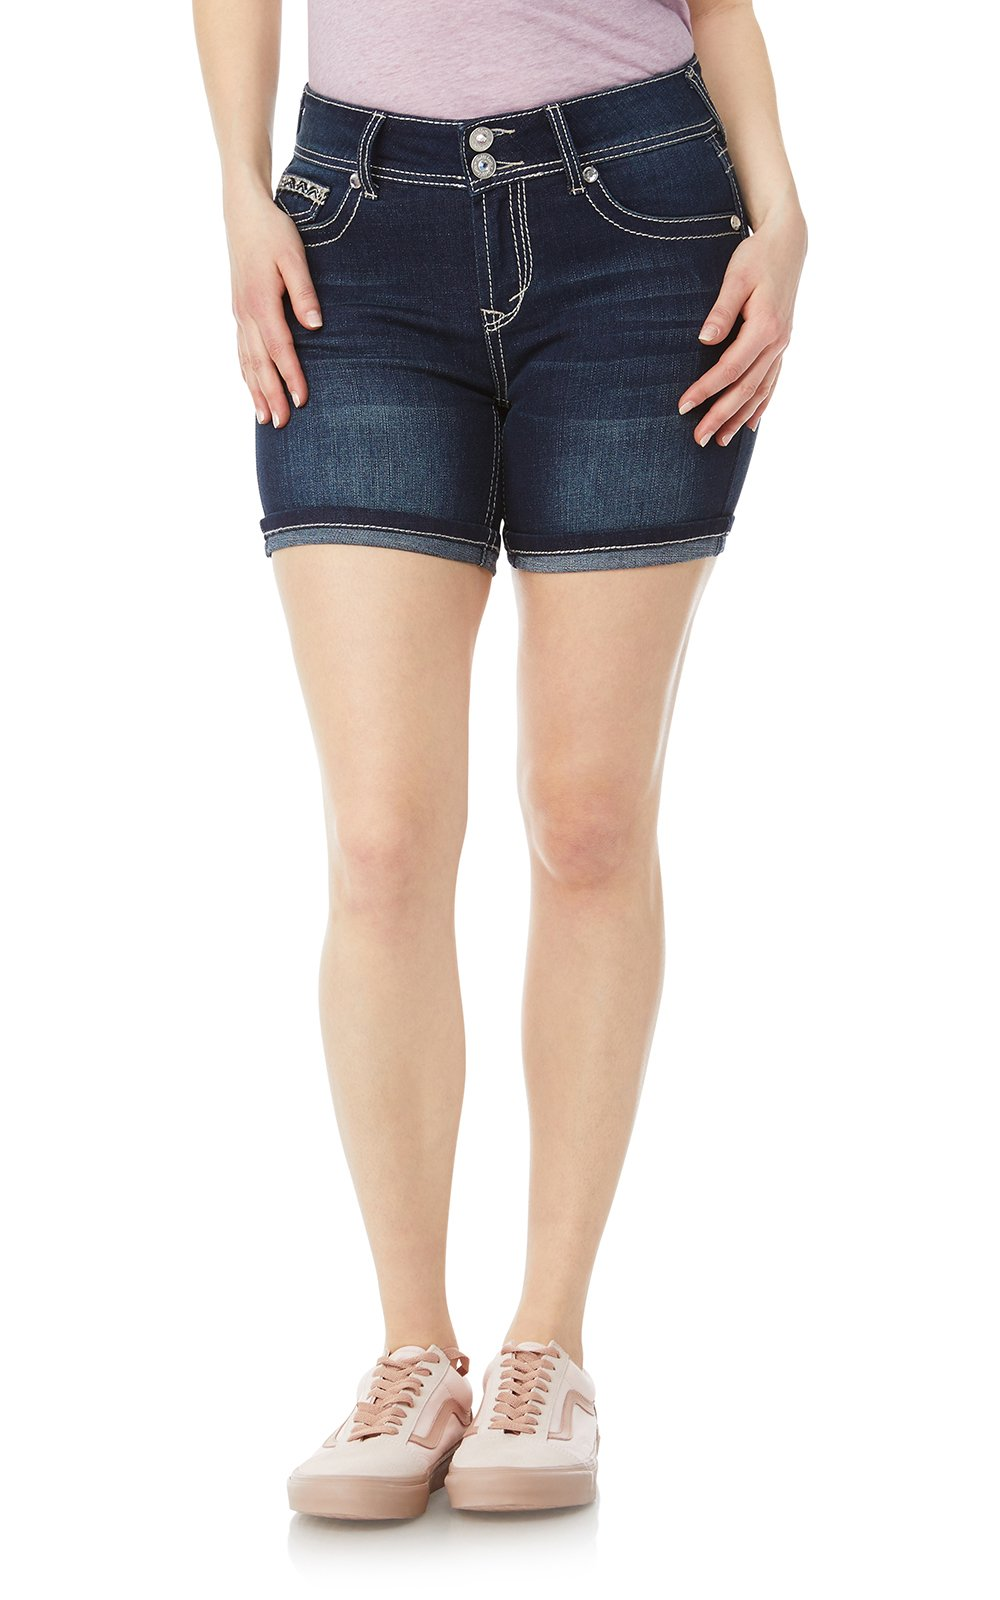 WallFlower Women's Juniors Luscious Curvy Embellished Midthigh Shorts in Betsy, 13